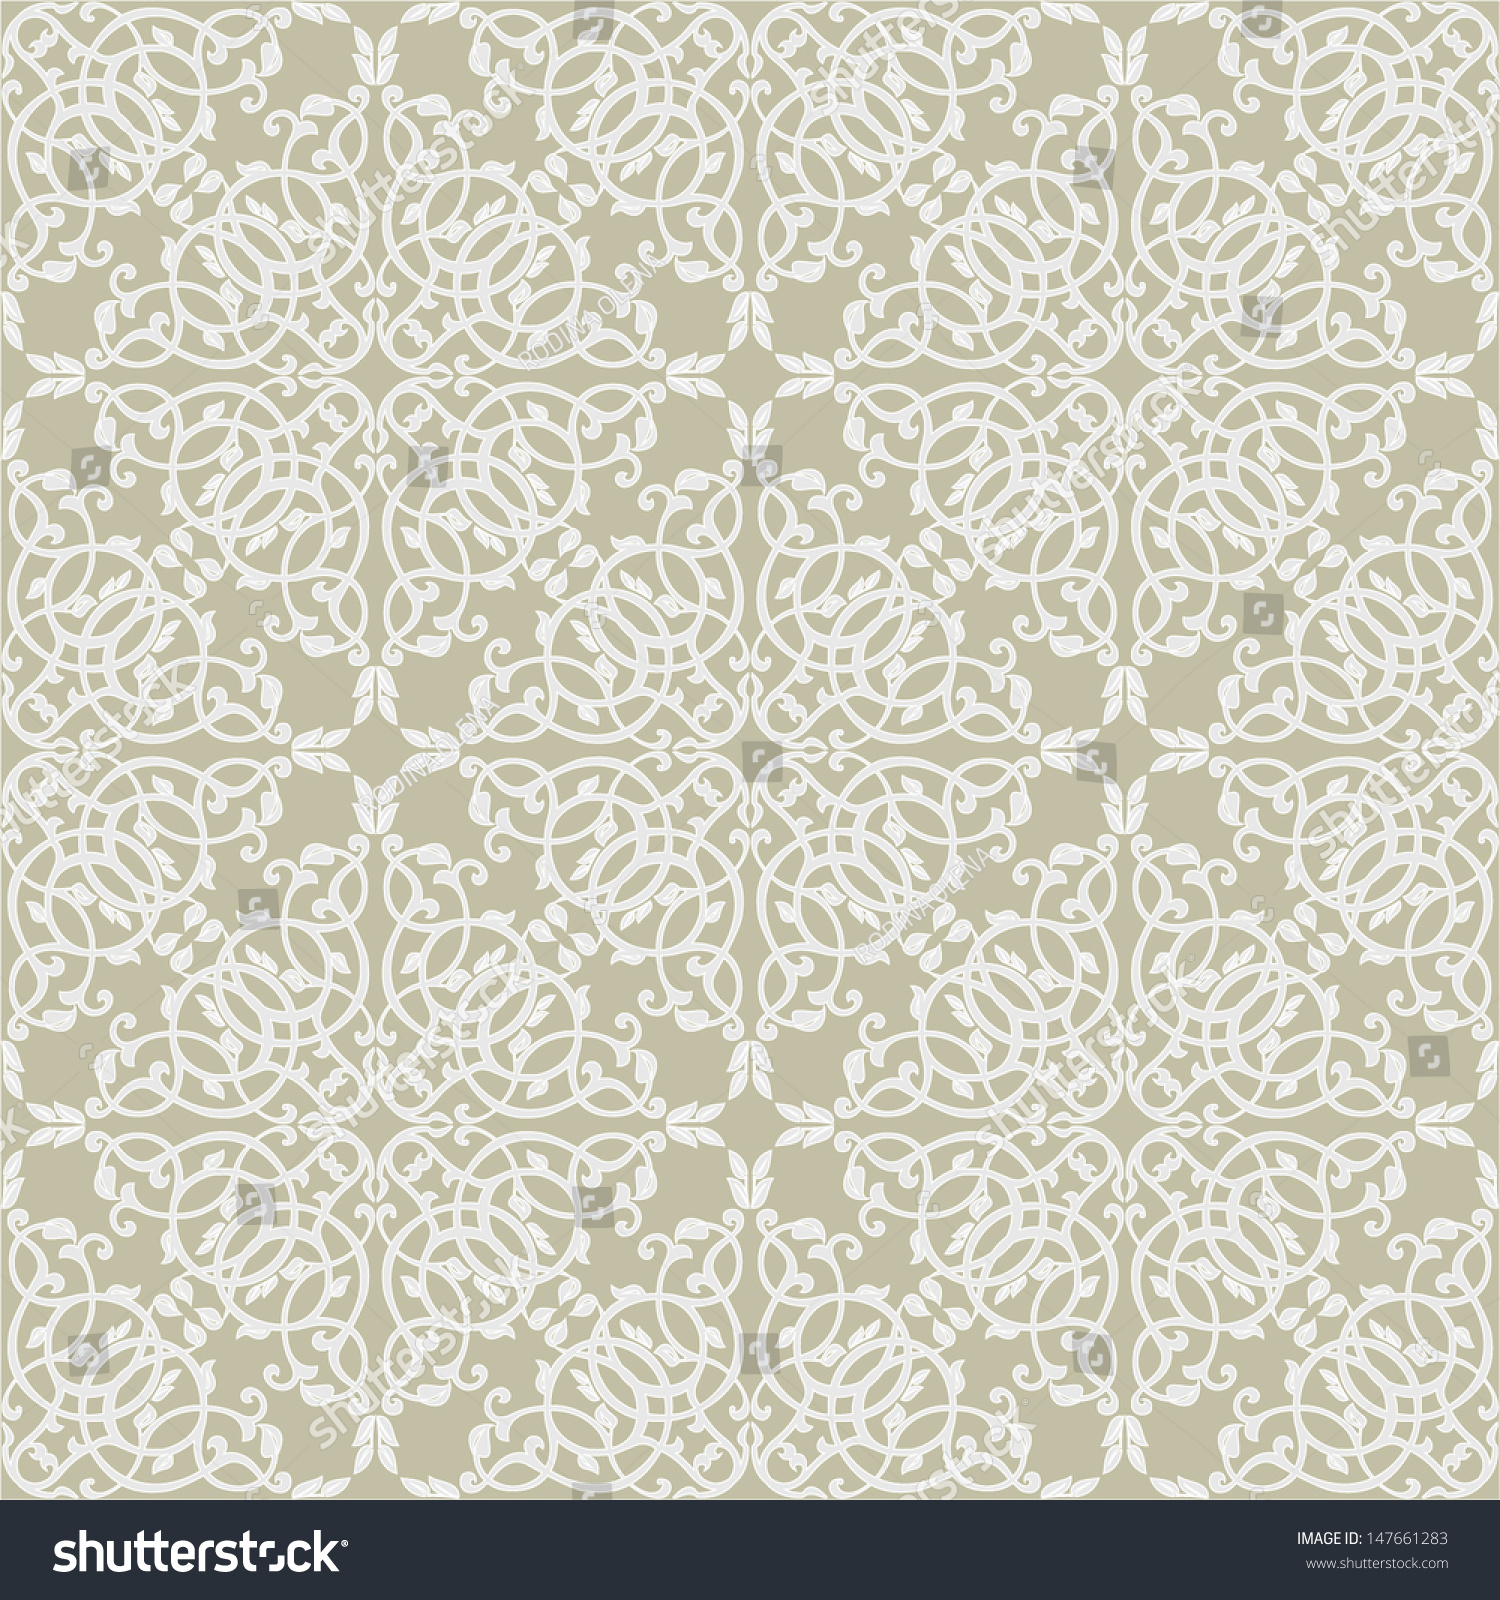 Damask floral pattern wallpaper baroque style stock vector for Baroque style wallpaper